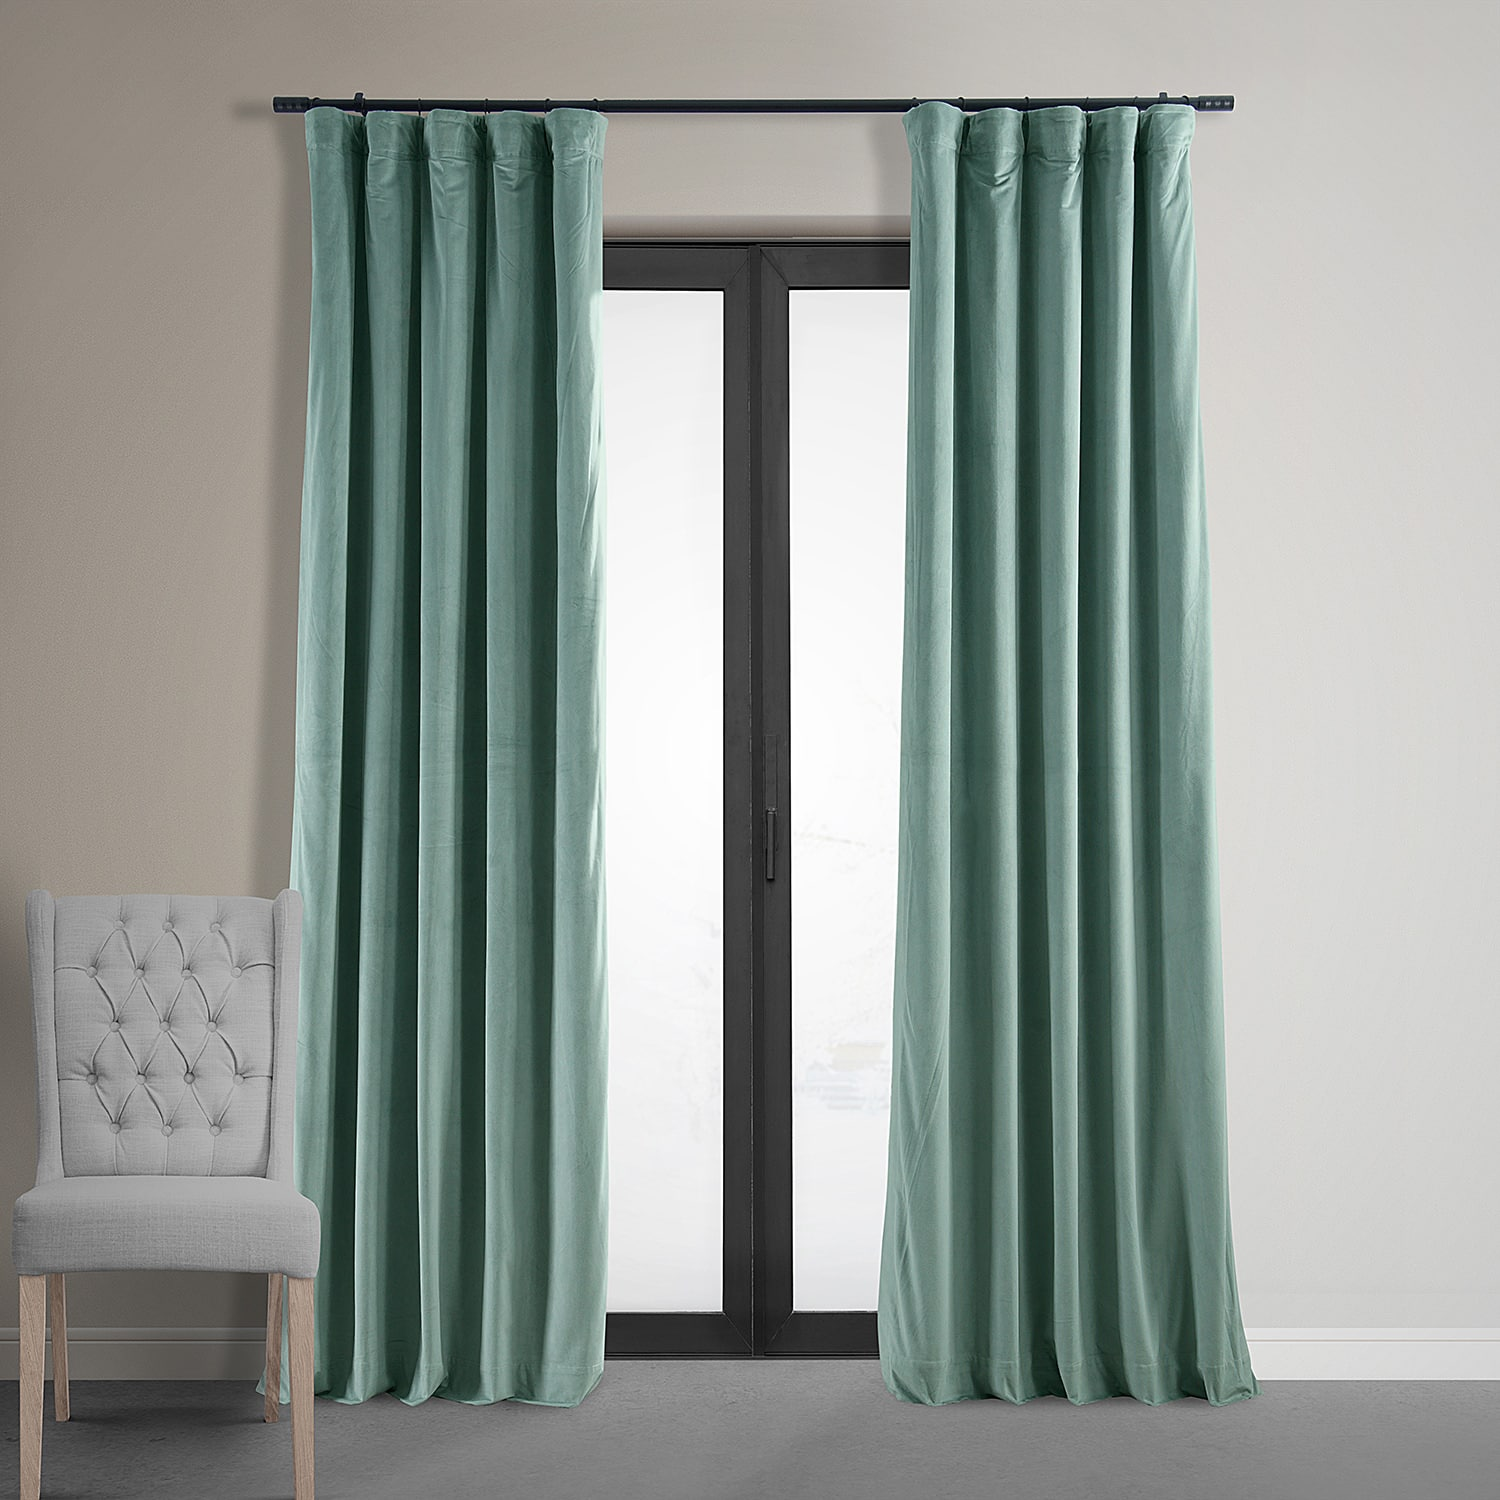 Signature Aqua Mist Blackout Velvet Curtains, Drapes